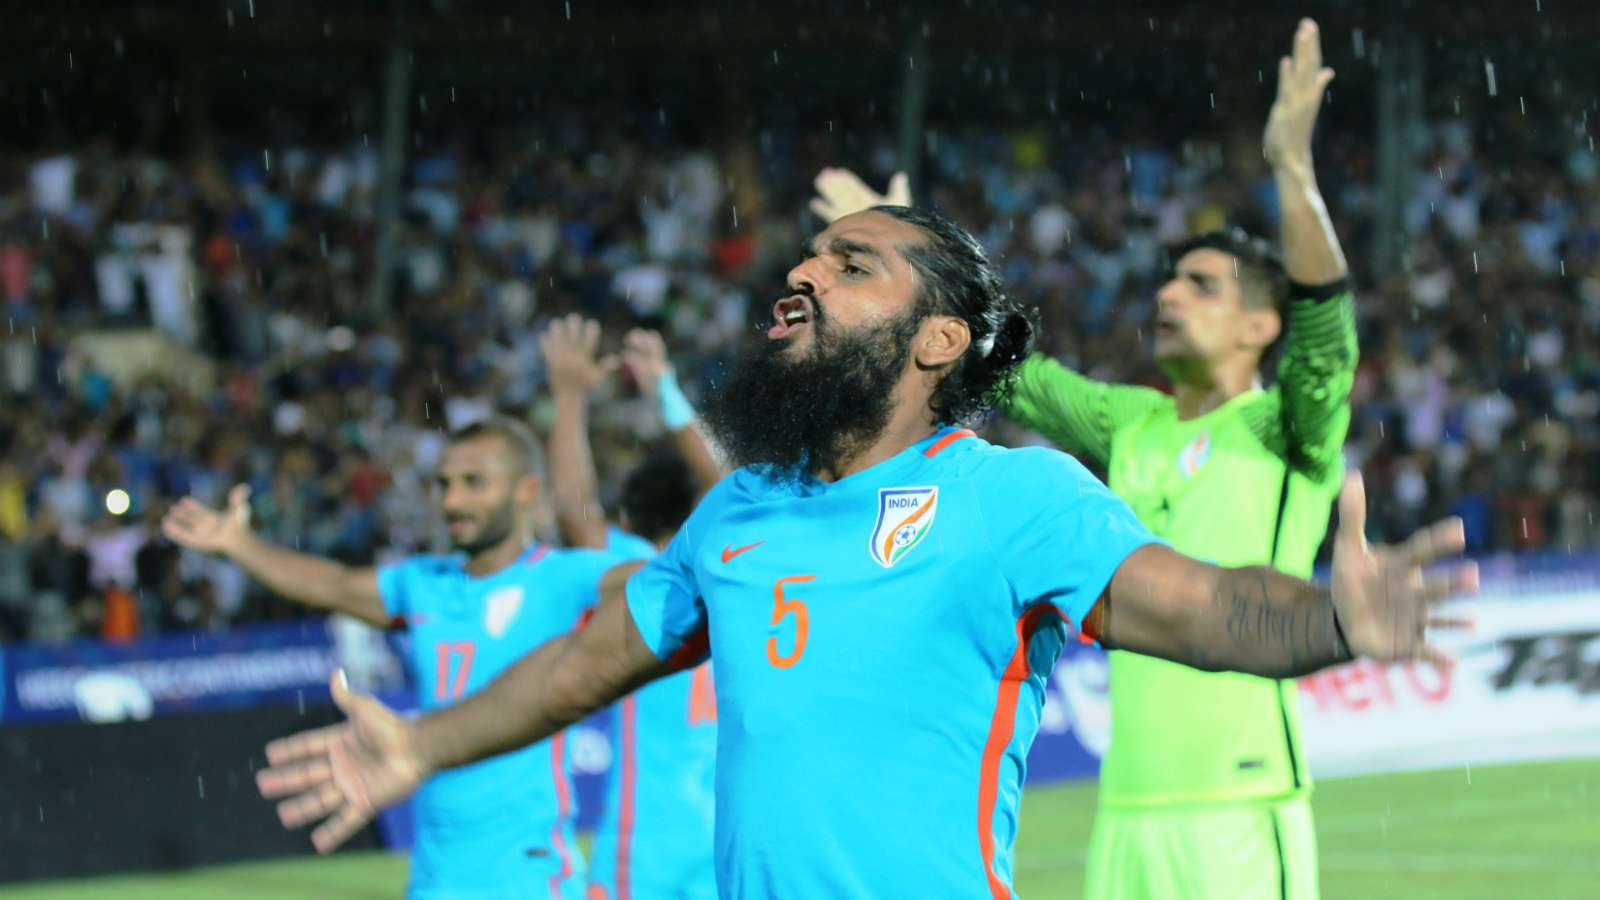 ISL: Eelco Schattorie - Sandesh Jhingan is an example in Indian Football